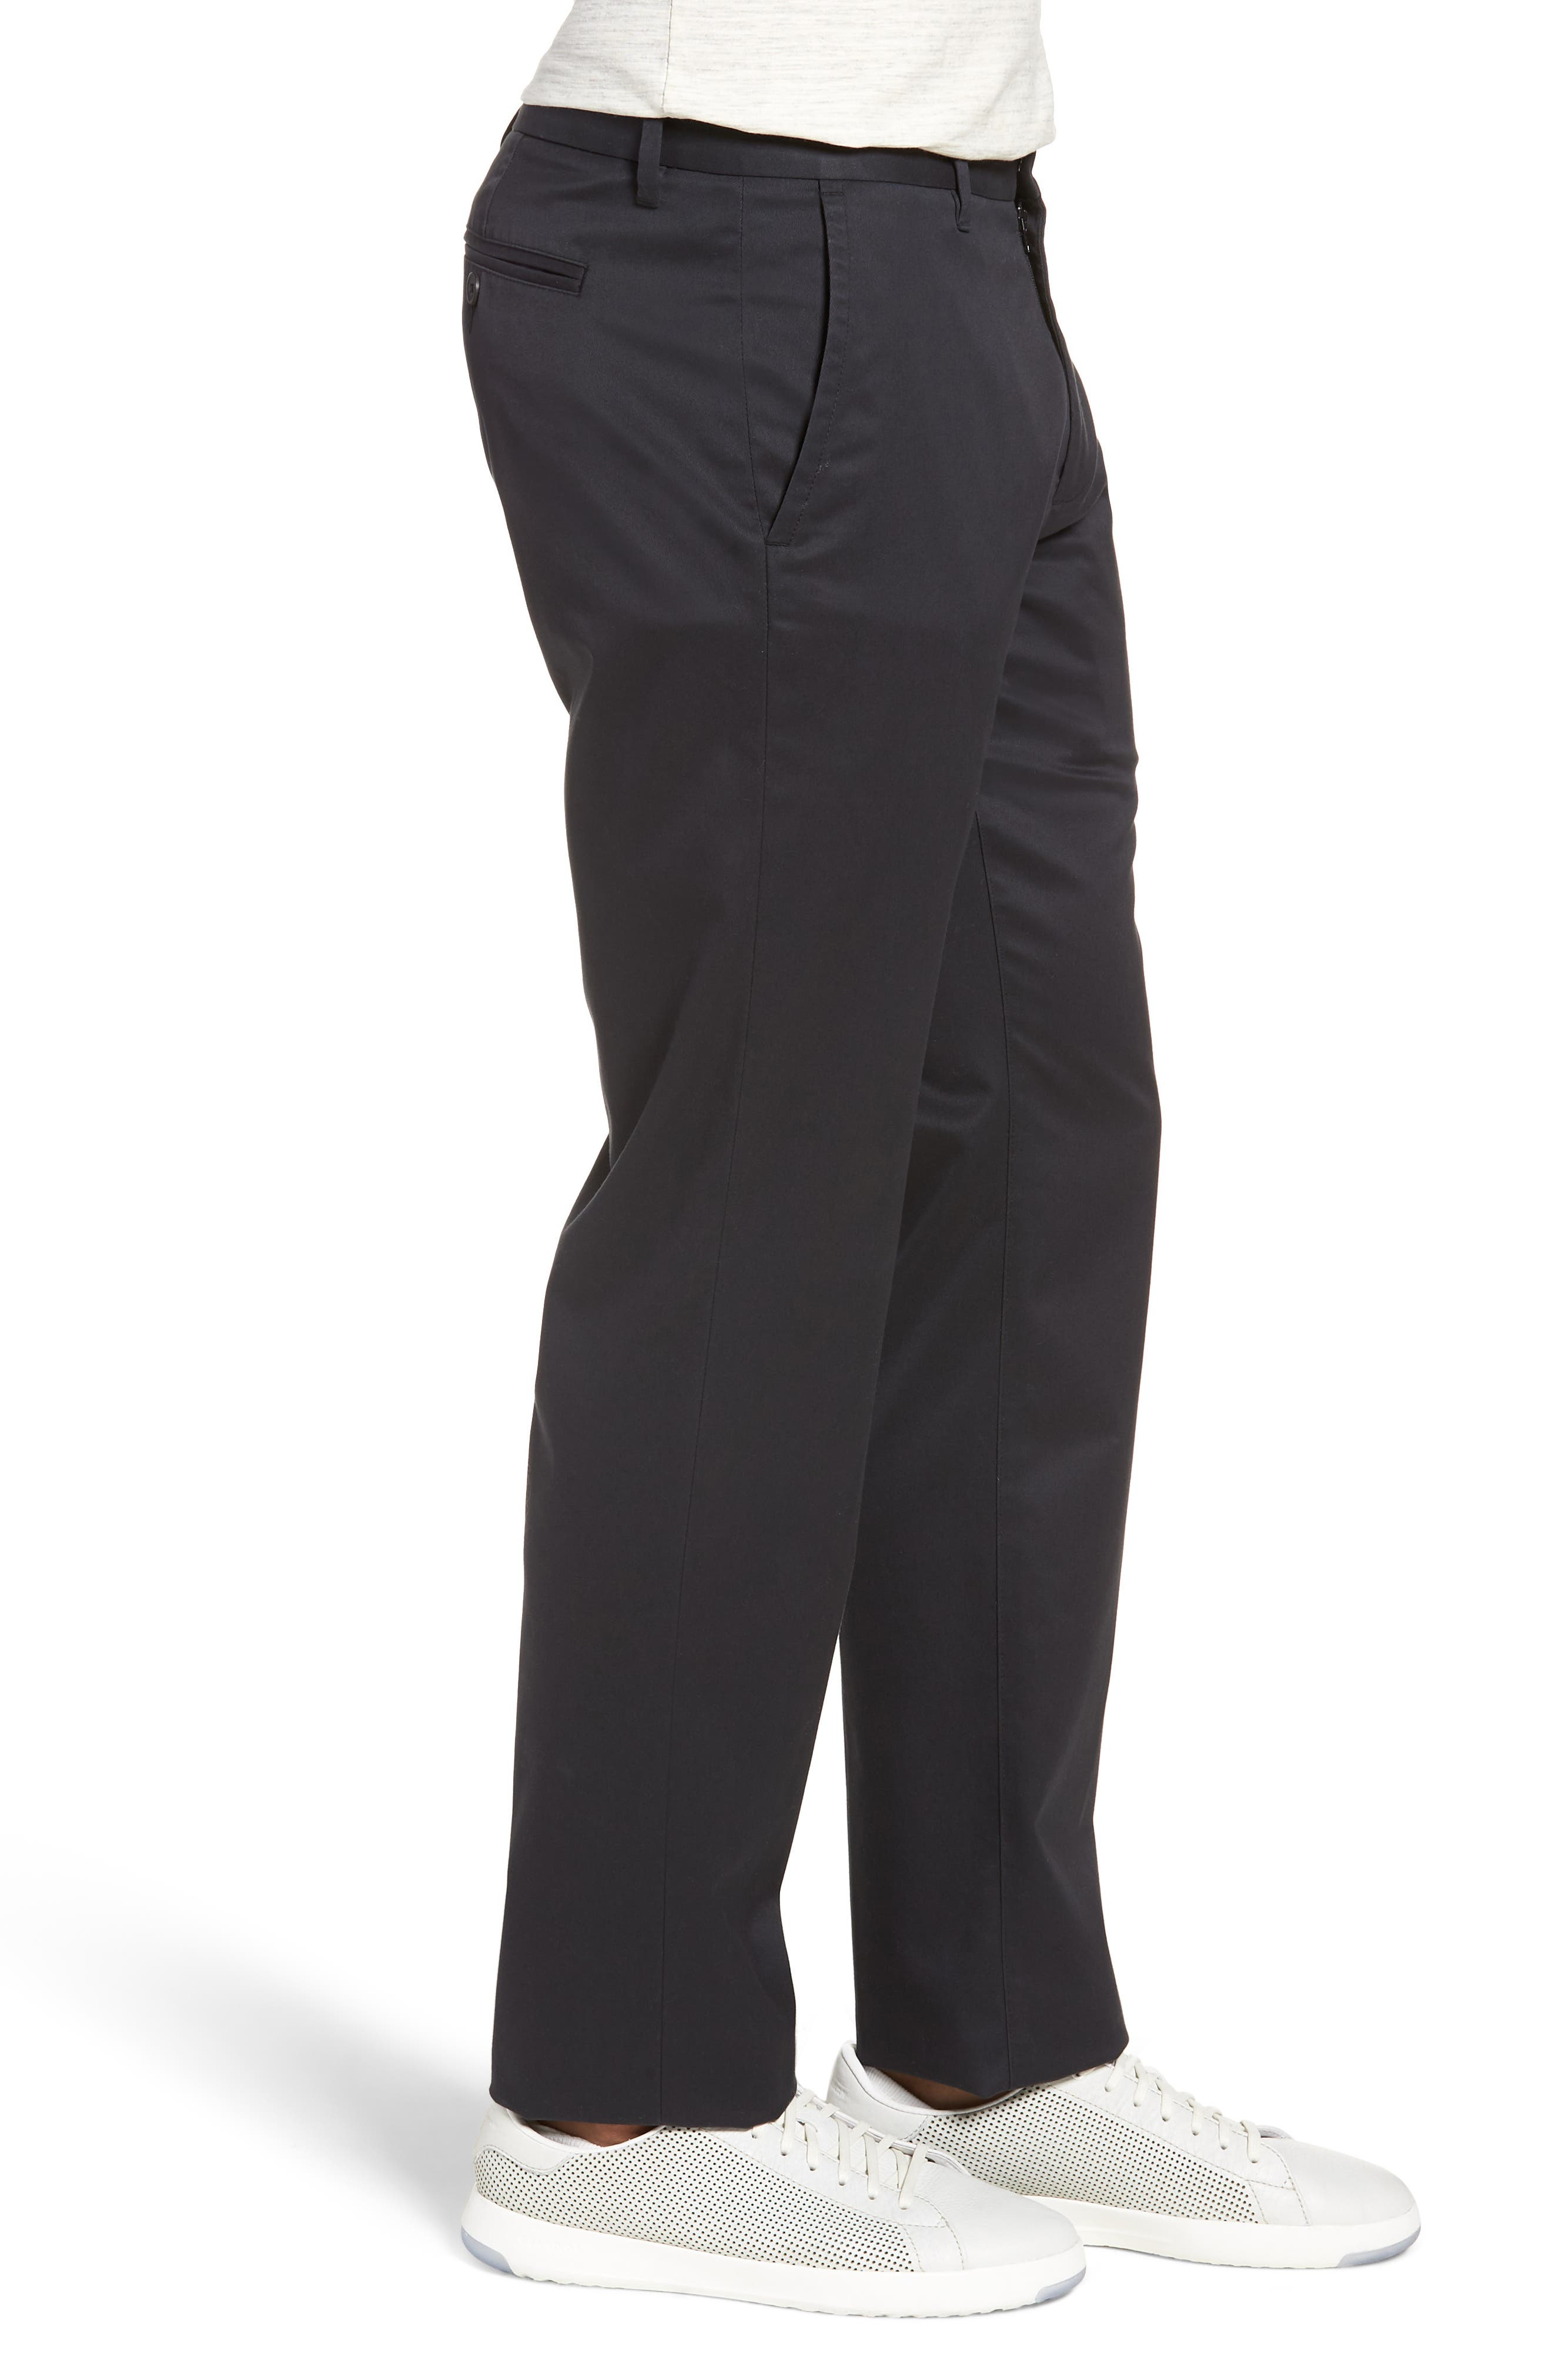 BONOBOS, Weekday Warrior Slim Fit Stretch Dress Pants, Alternate thumbnail 4, color, BLACK